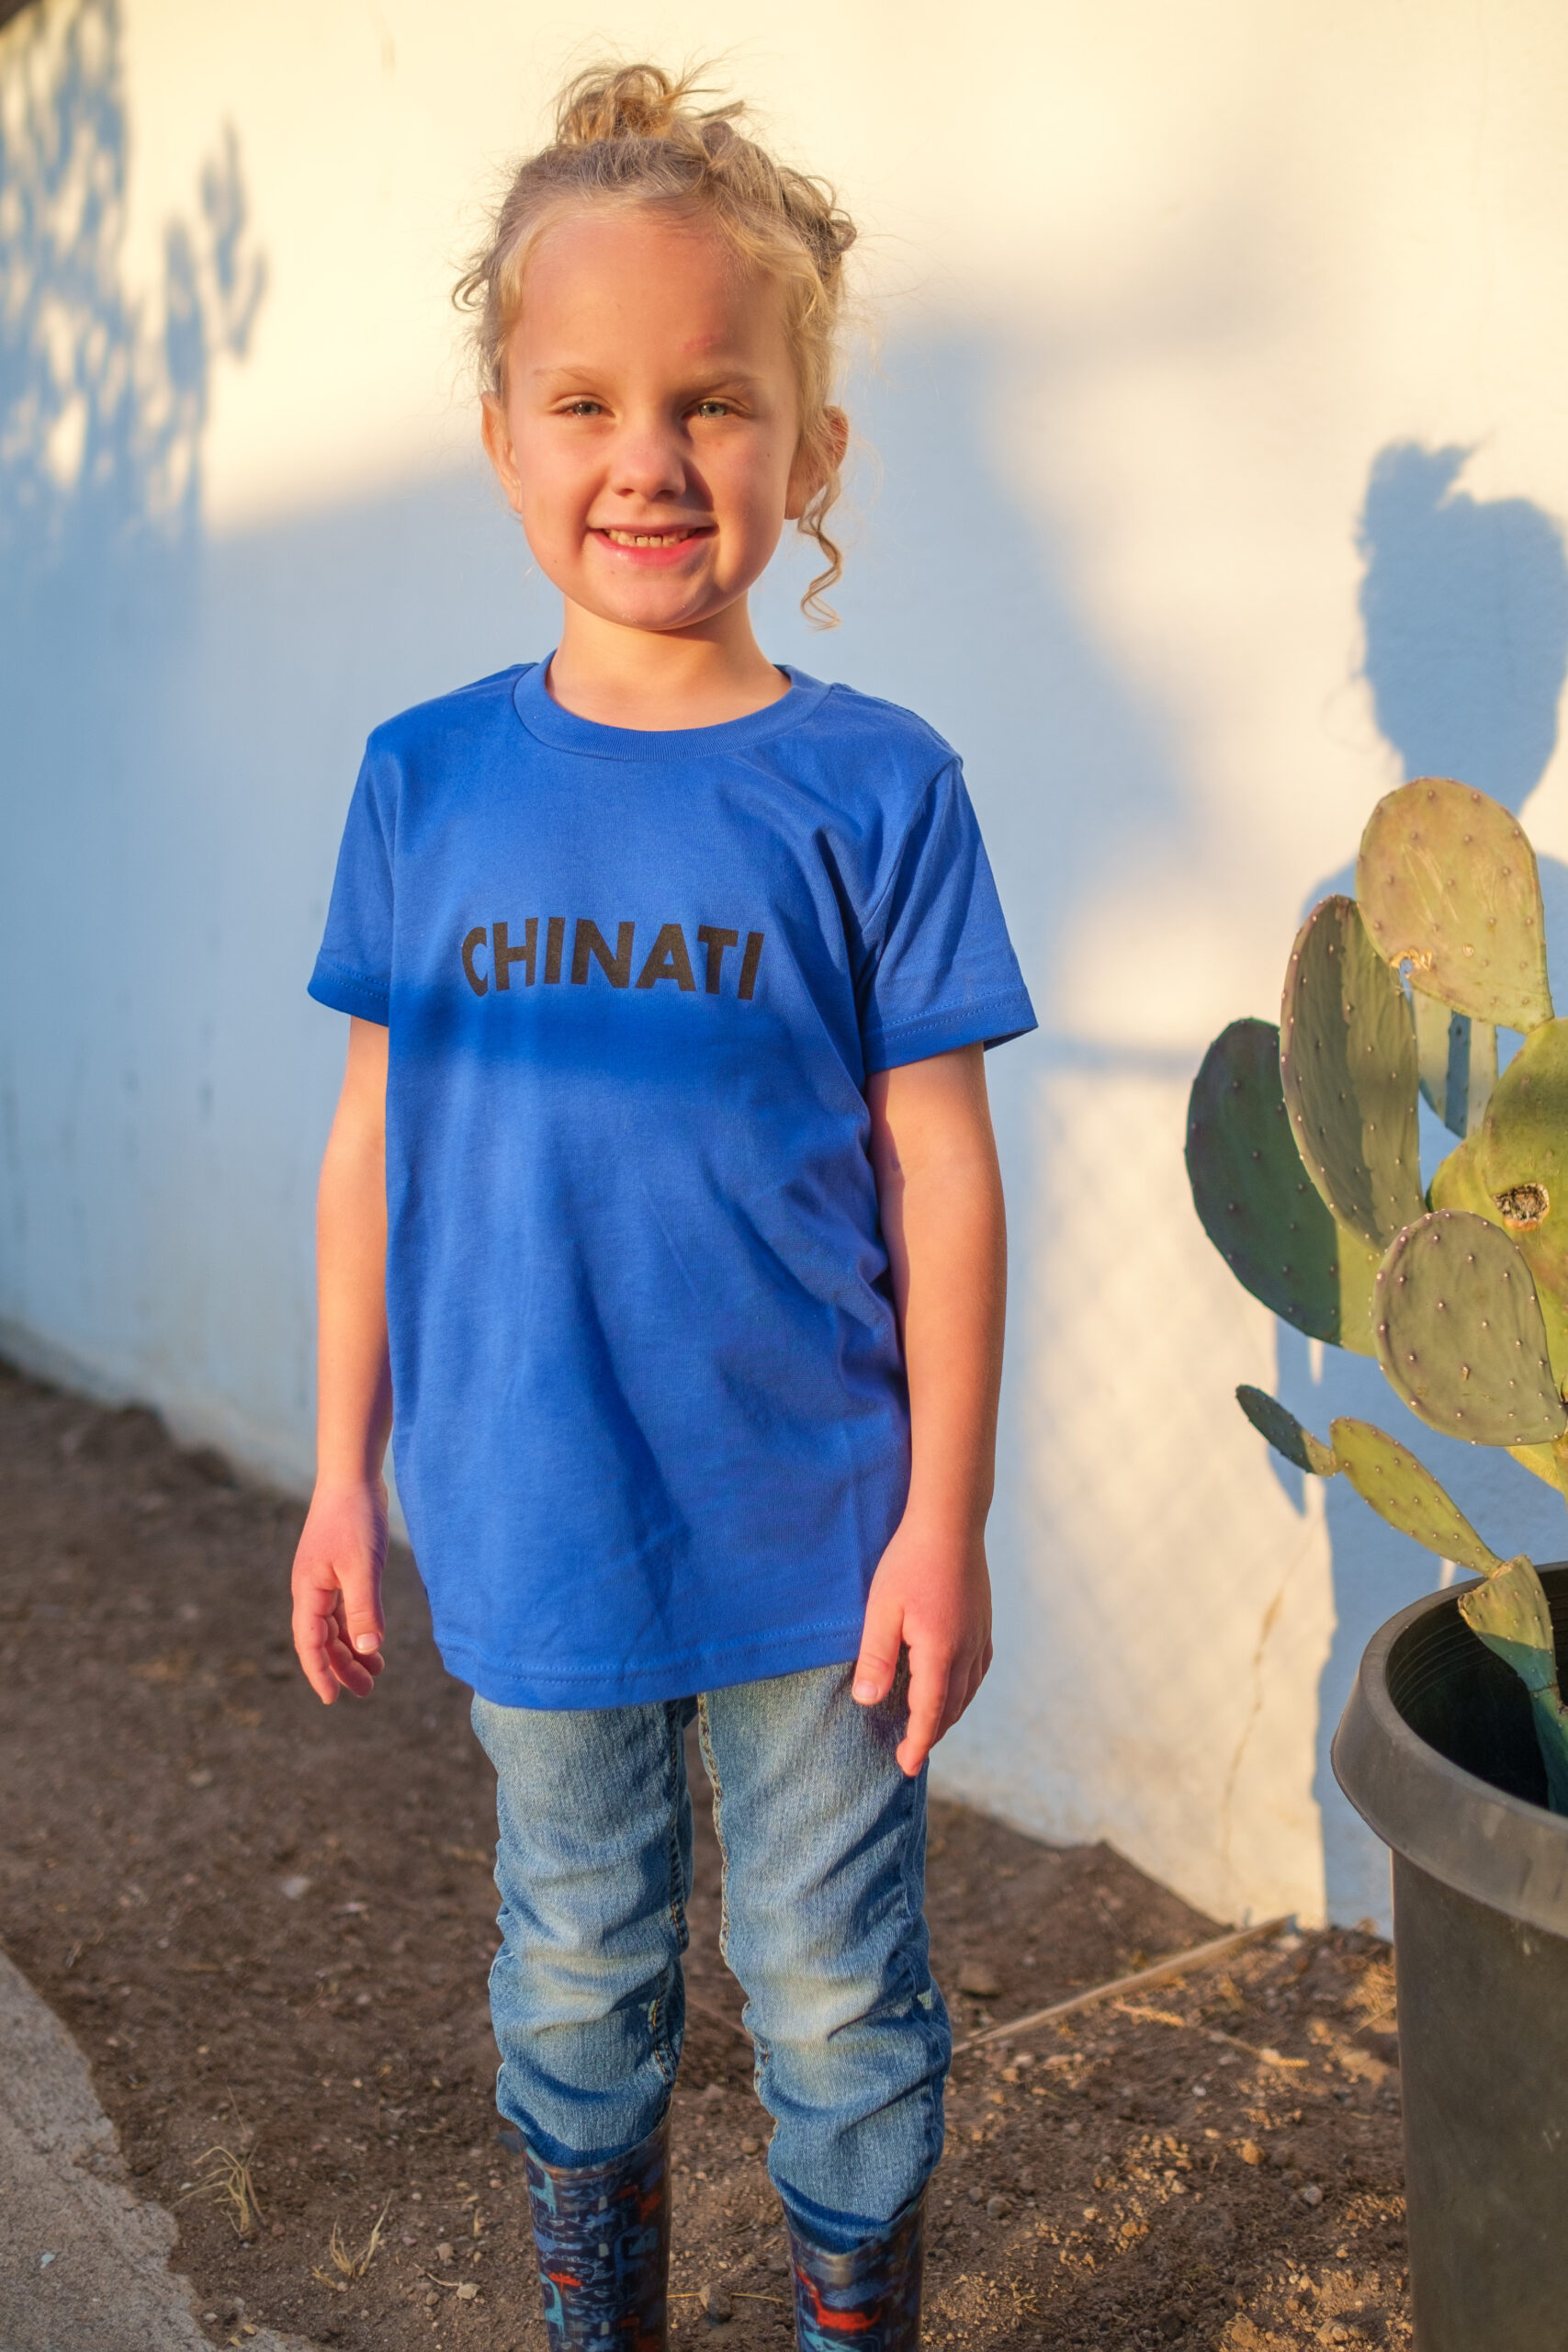 Wyld in the blue Chinati kid's tee